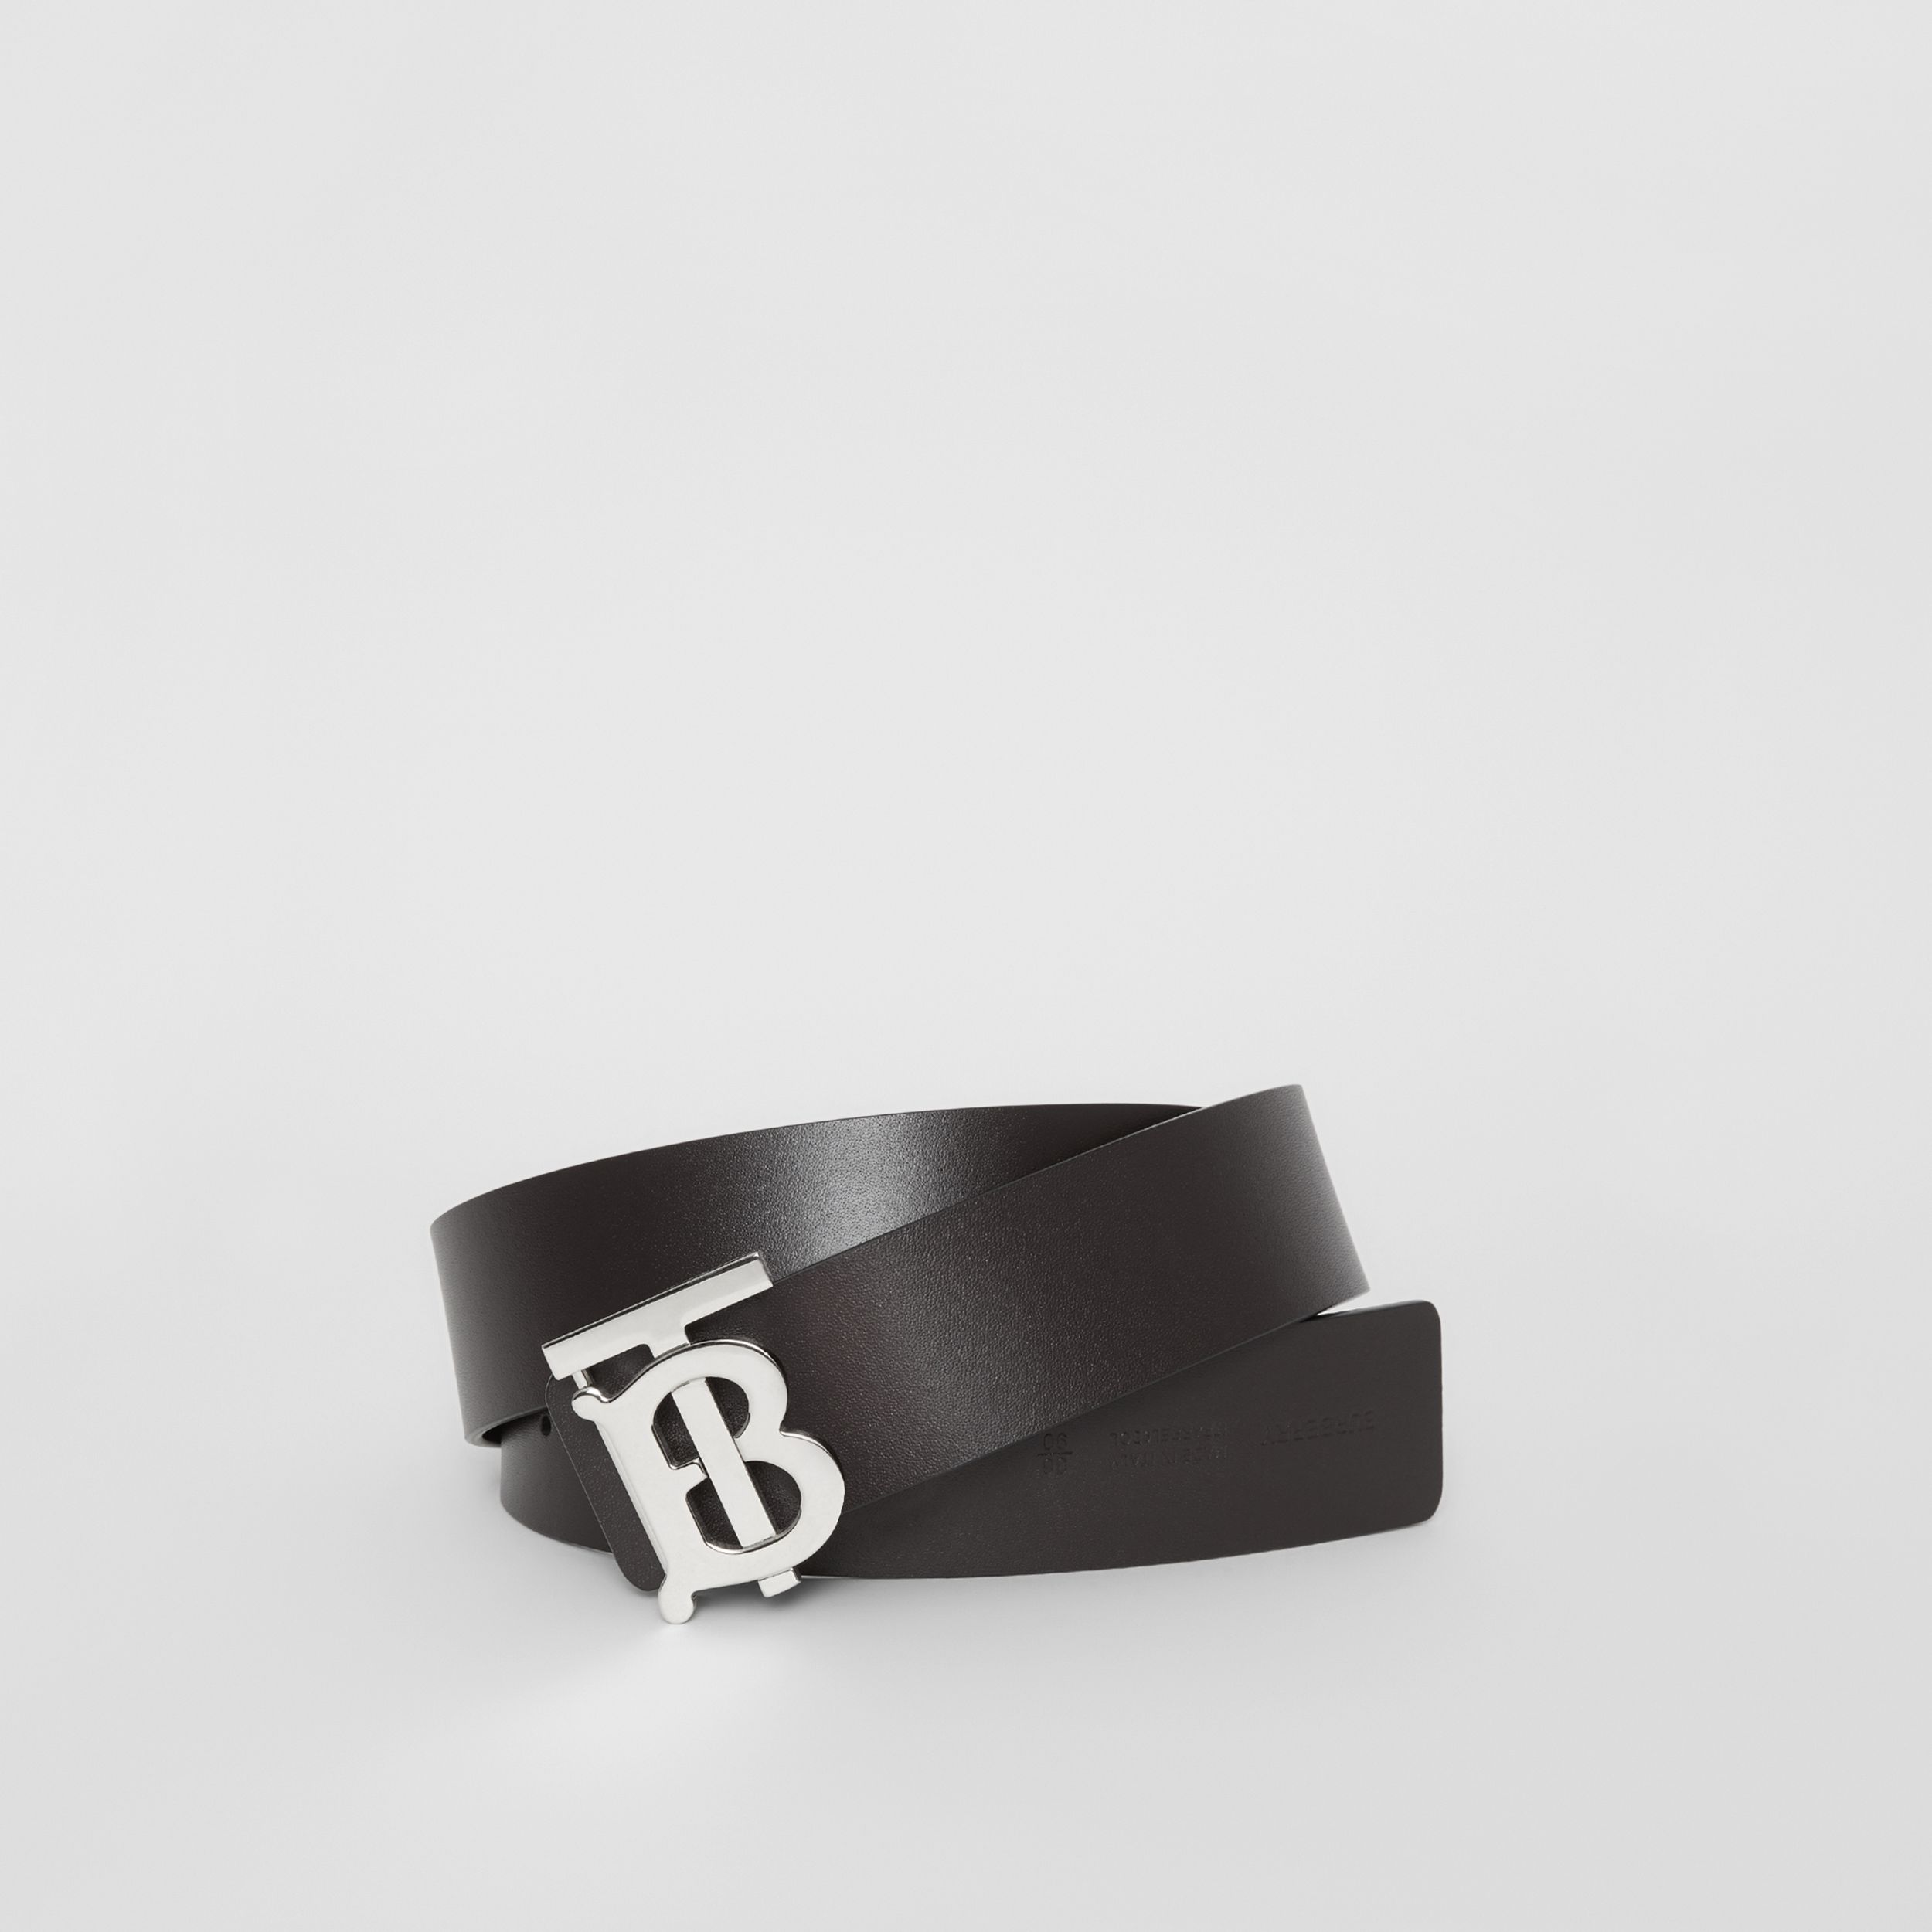 Reversible Monogram Motif Leather Belt in Black/malt Brown | Burberry - 1